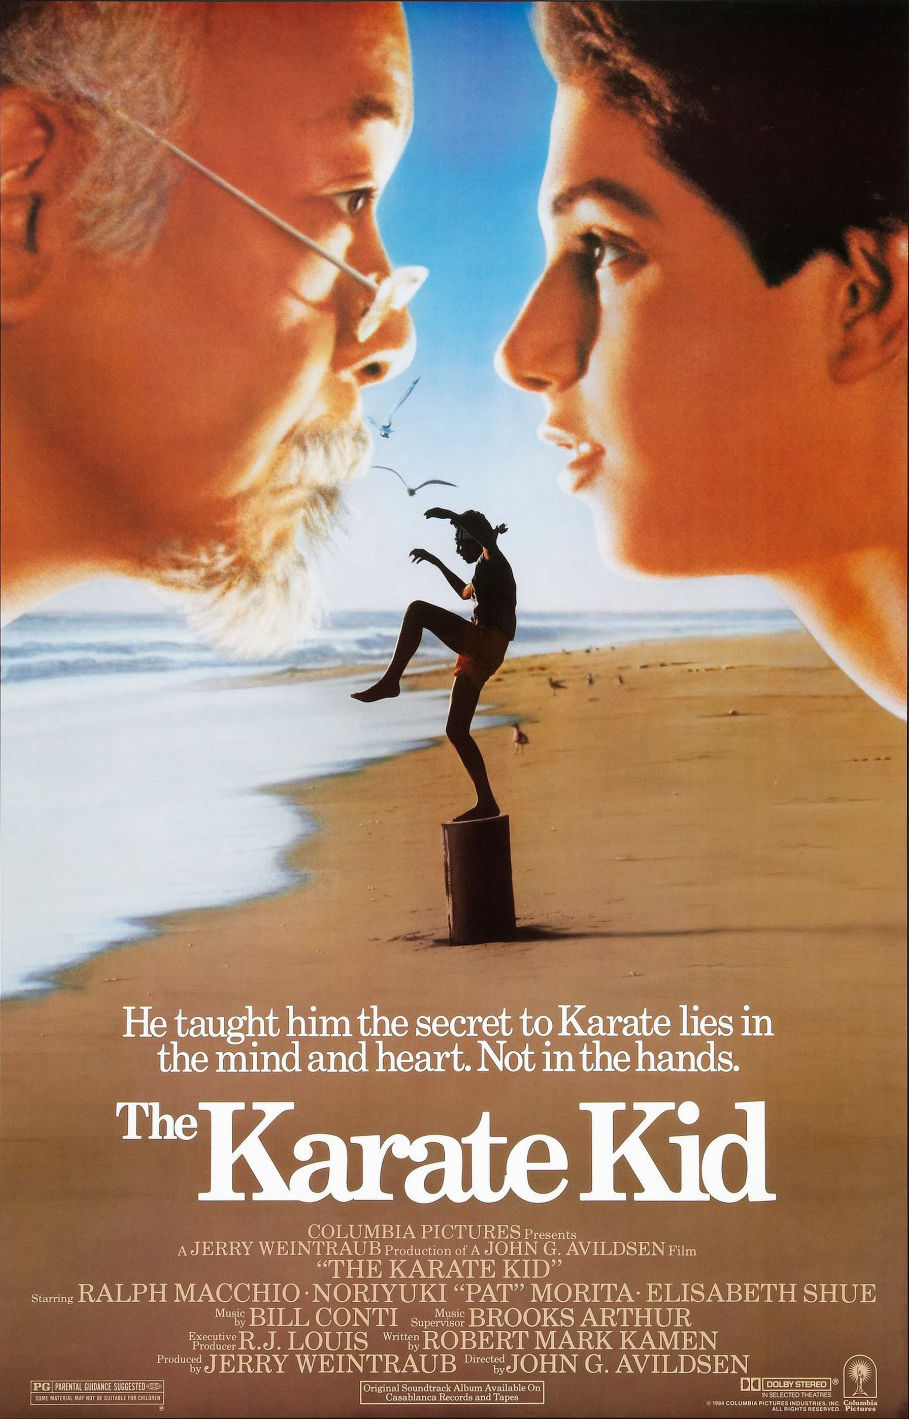 Reminiscing On The Karate Kid (The Original)